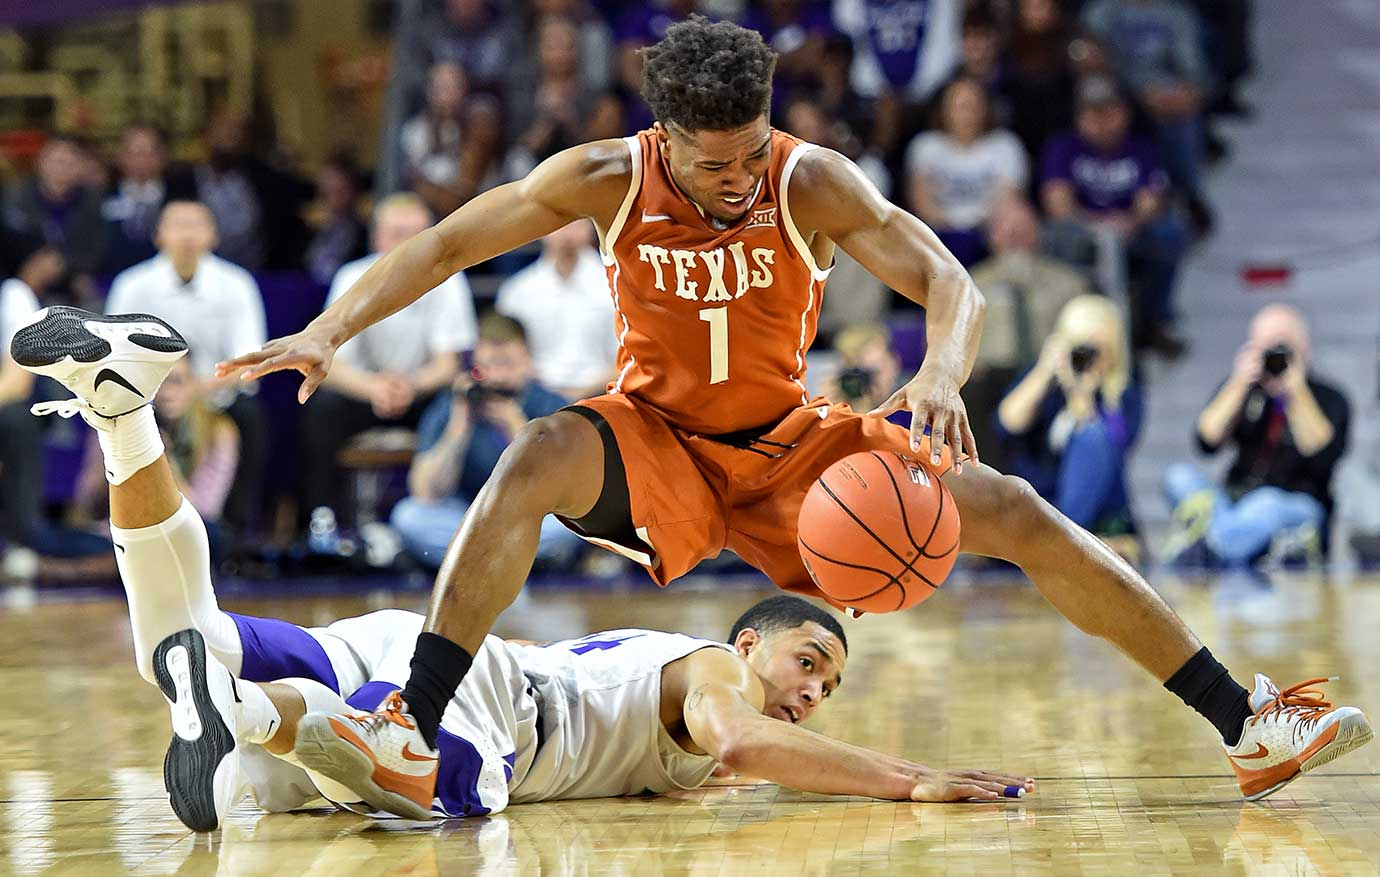 Isaiah Taylor of the Texas Longhorns scrambles for a loose ball against Justin Edwards of Kansas State.